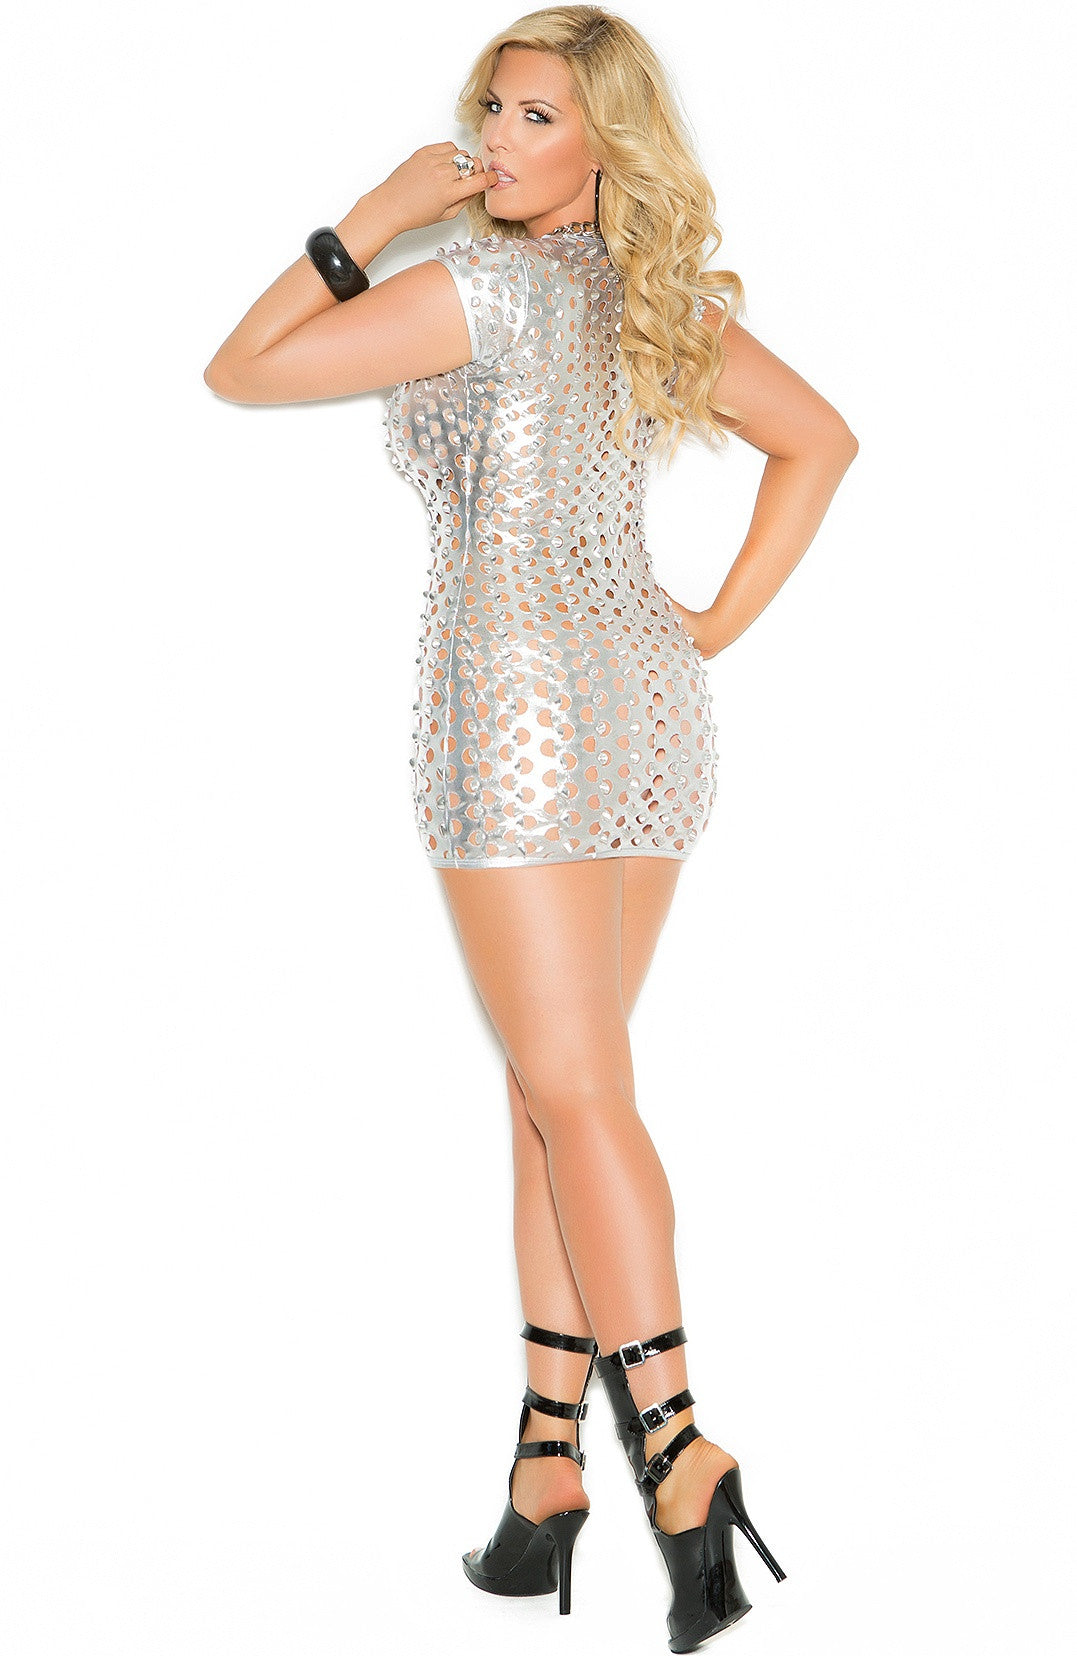 EM-8302 Silver short mini dress - Sexylingerieland  - 4